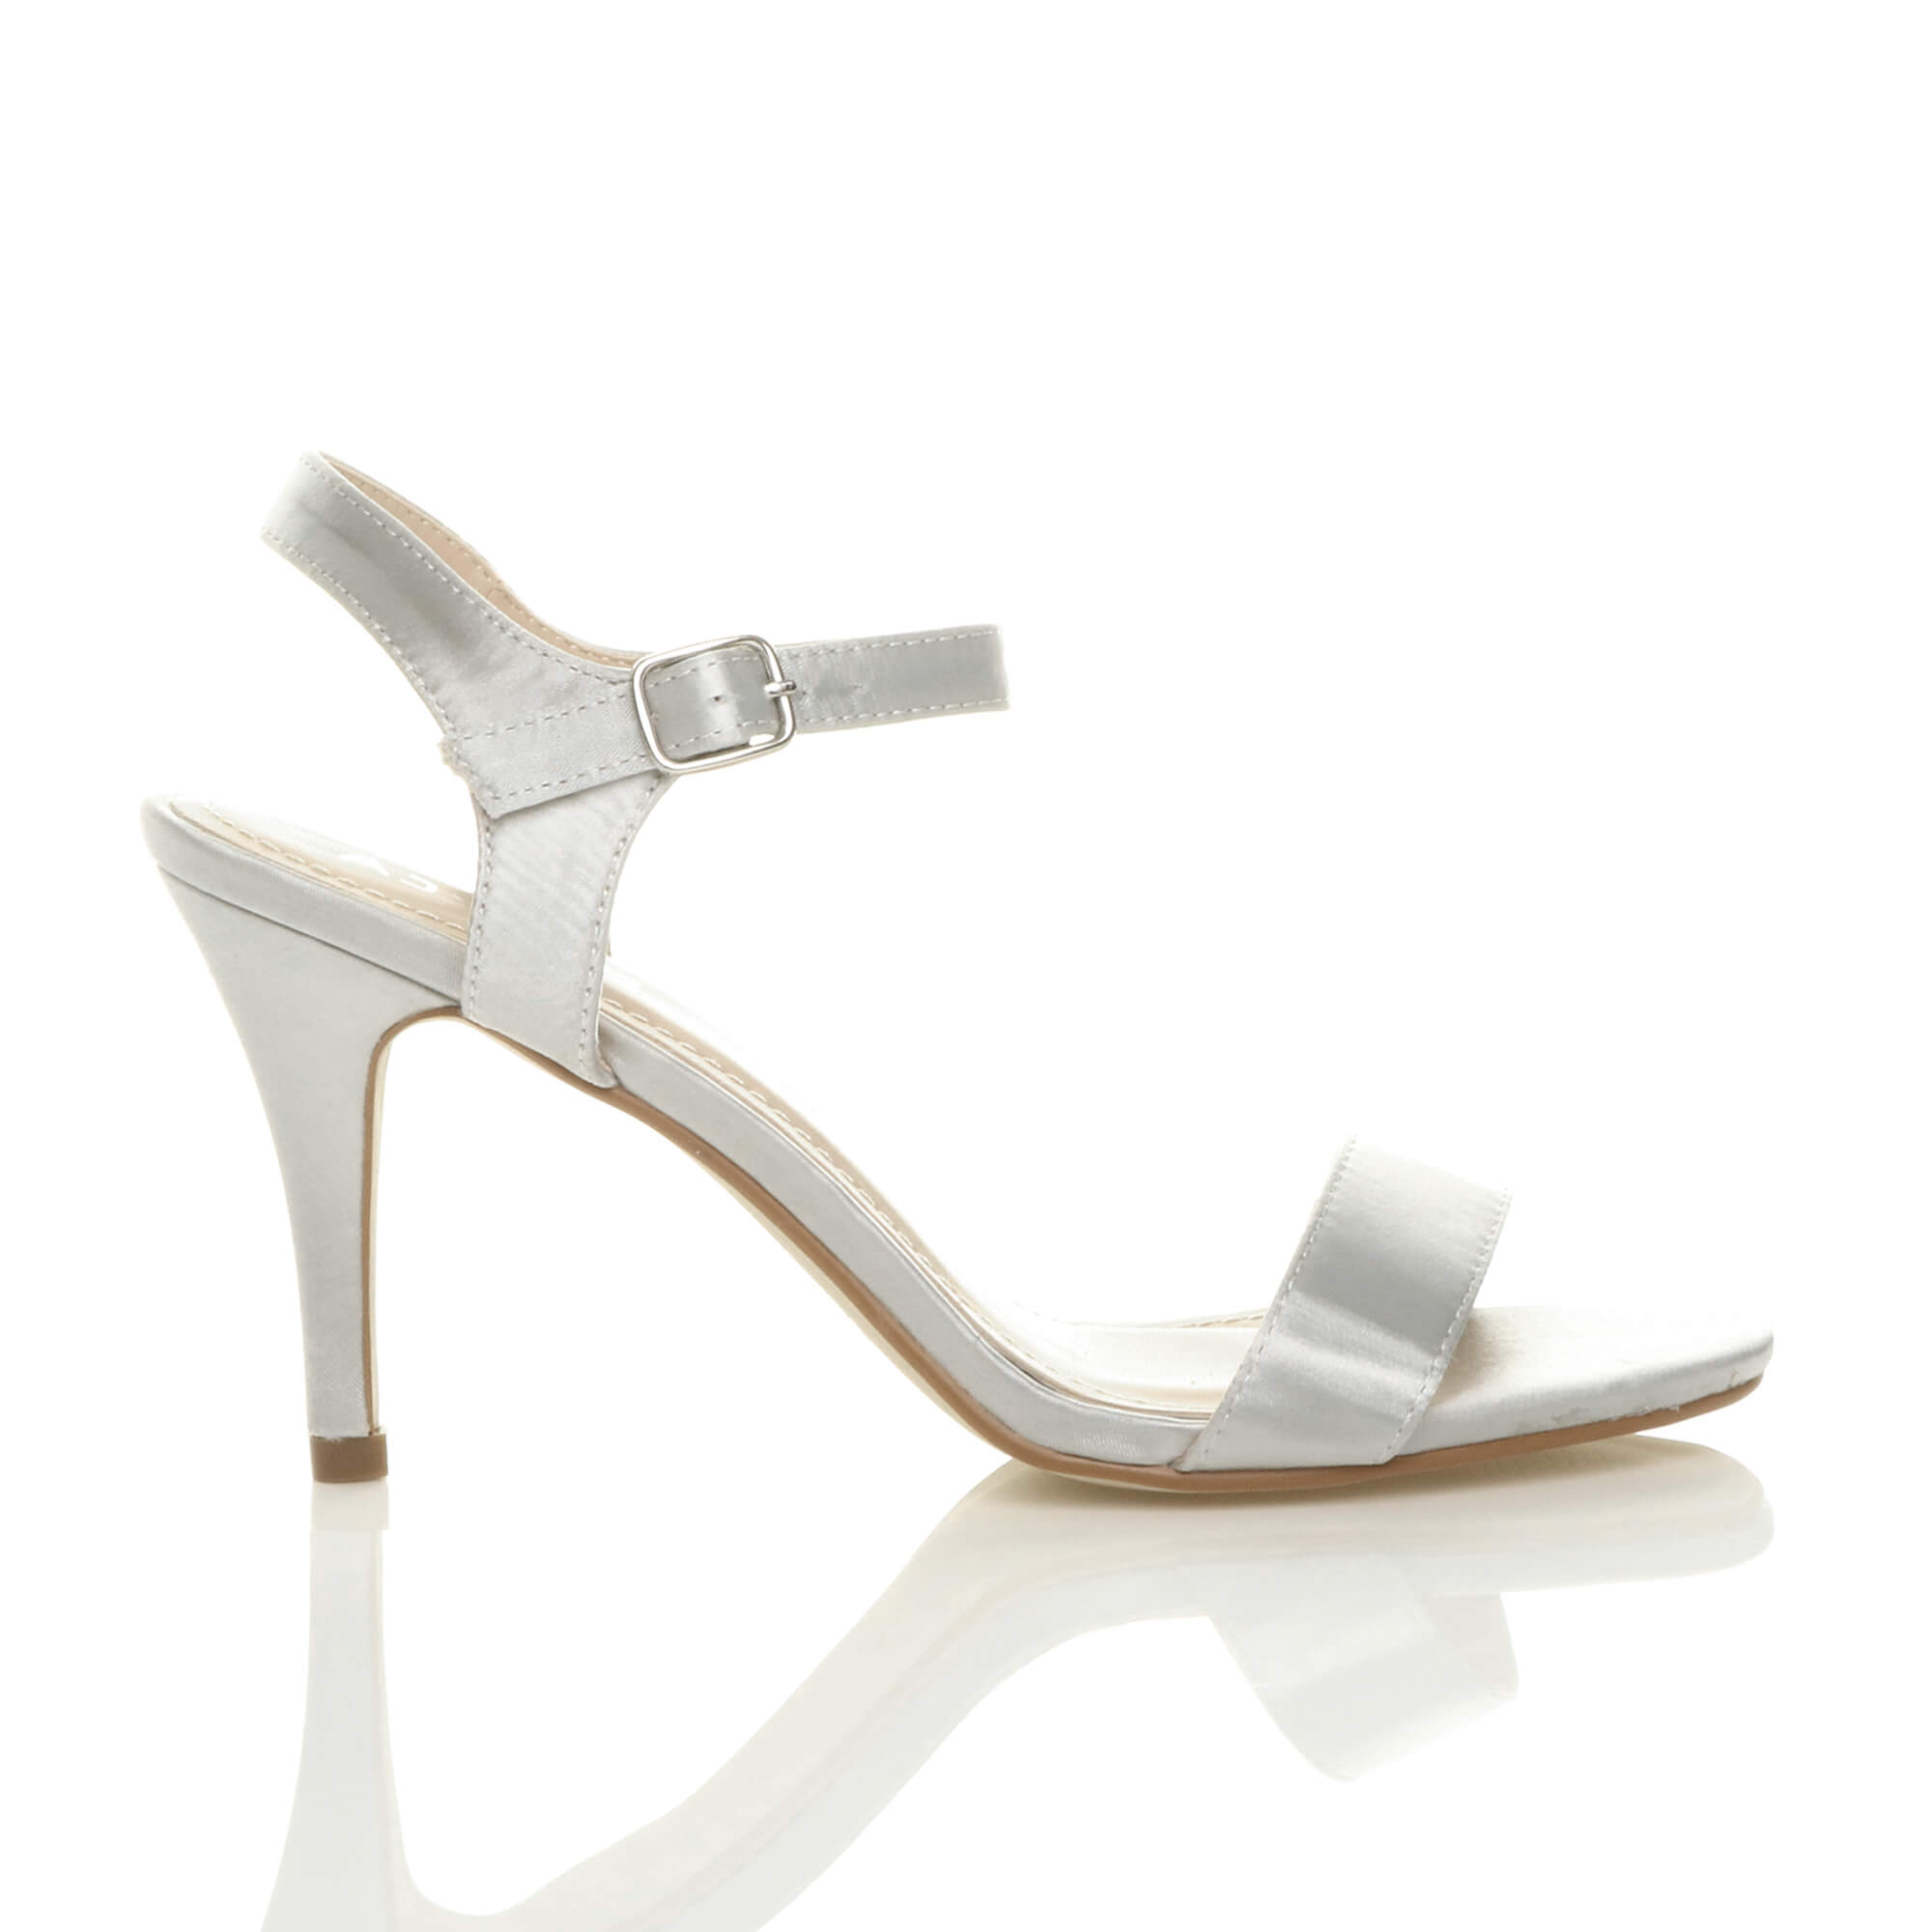 WOMENS-LADIES-HIGH-HEEL-BUCKLE-STRAPPY-BASIC-BARELY-THERE-SANDALS-SHOES-SIZE thumbnail 136